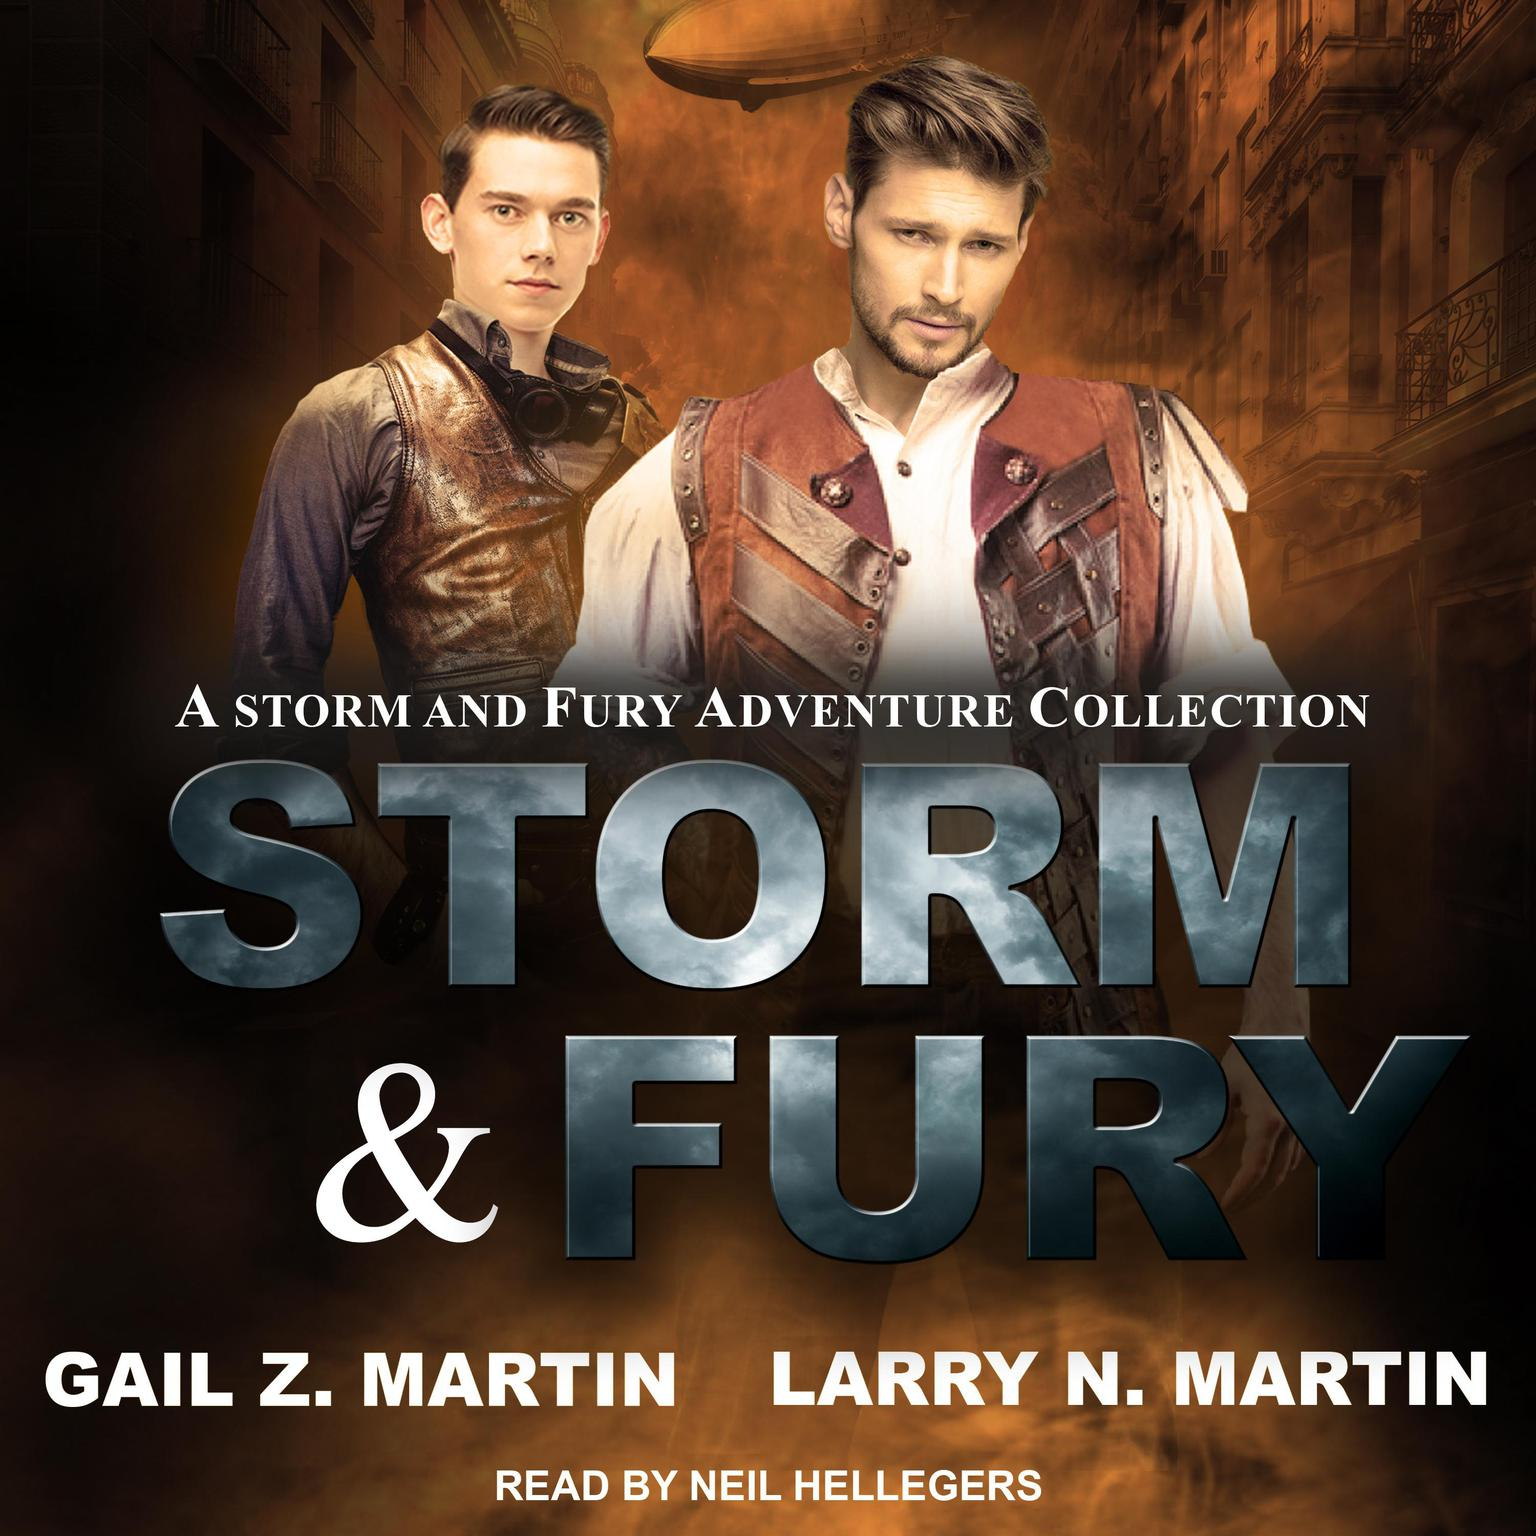 Storm & Fury: A Storm & Fury Adventures Collection Audiobook, by Gail Z. Martin